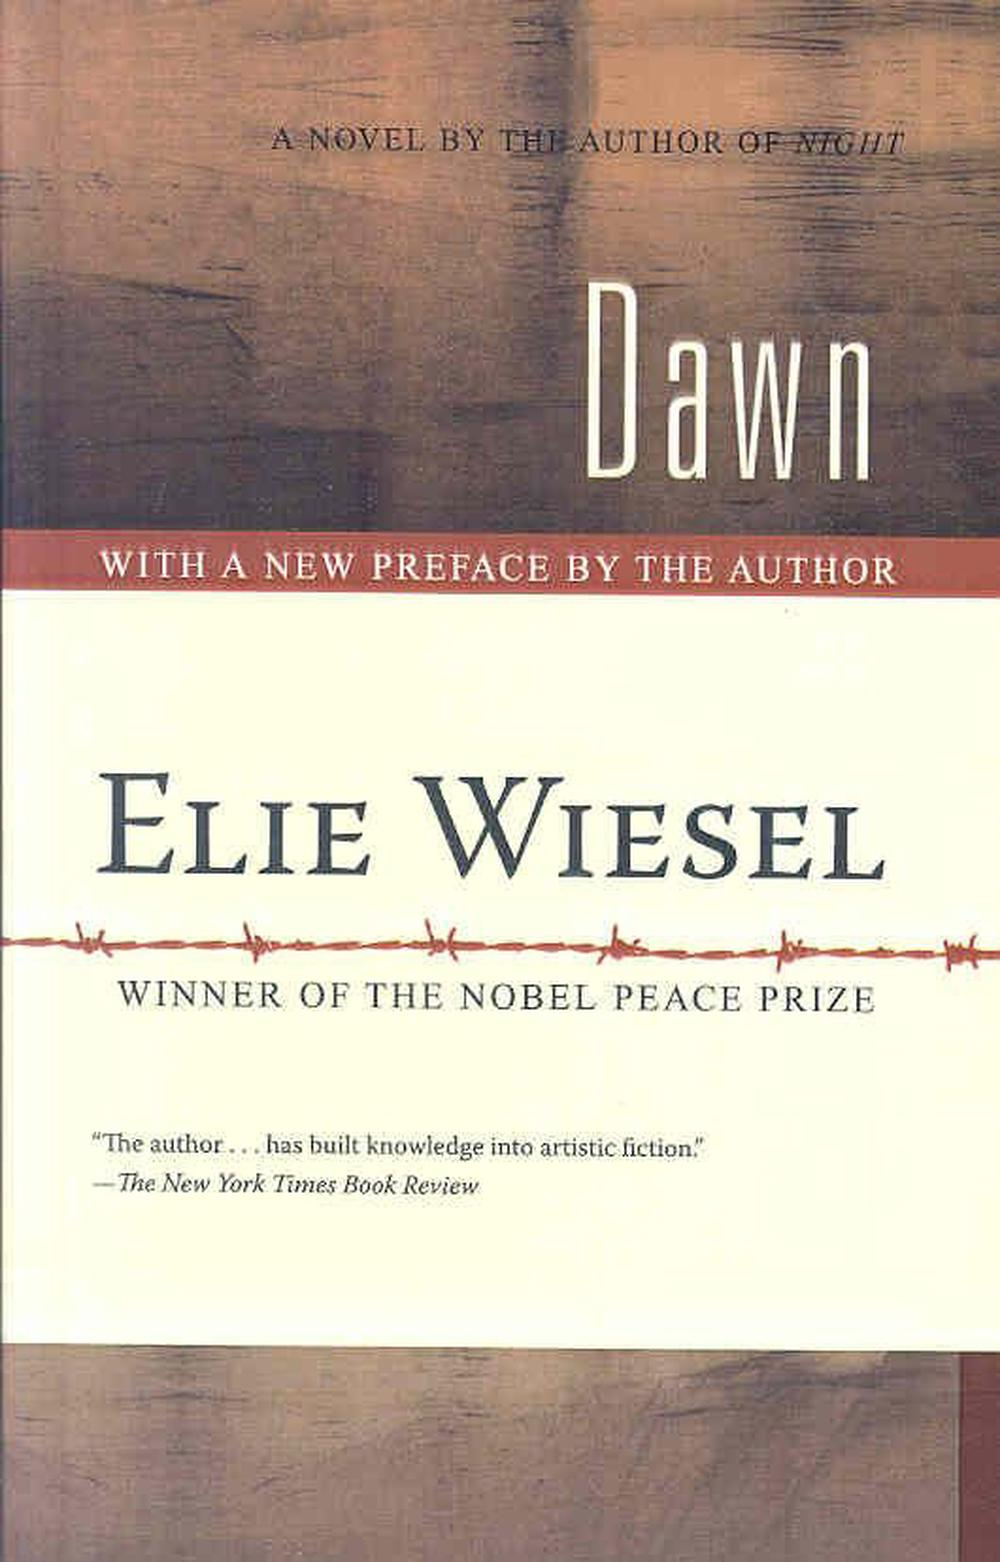 essay on the book night by elie wiesel